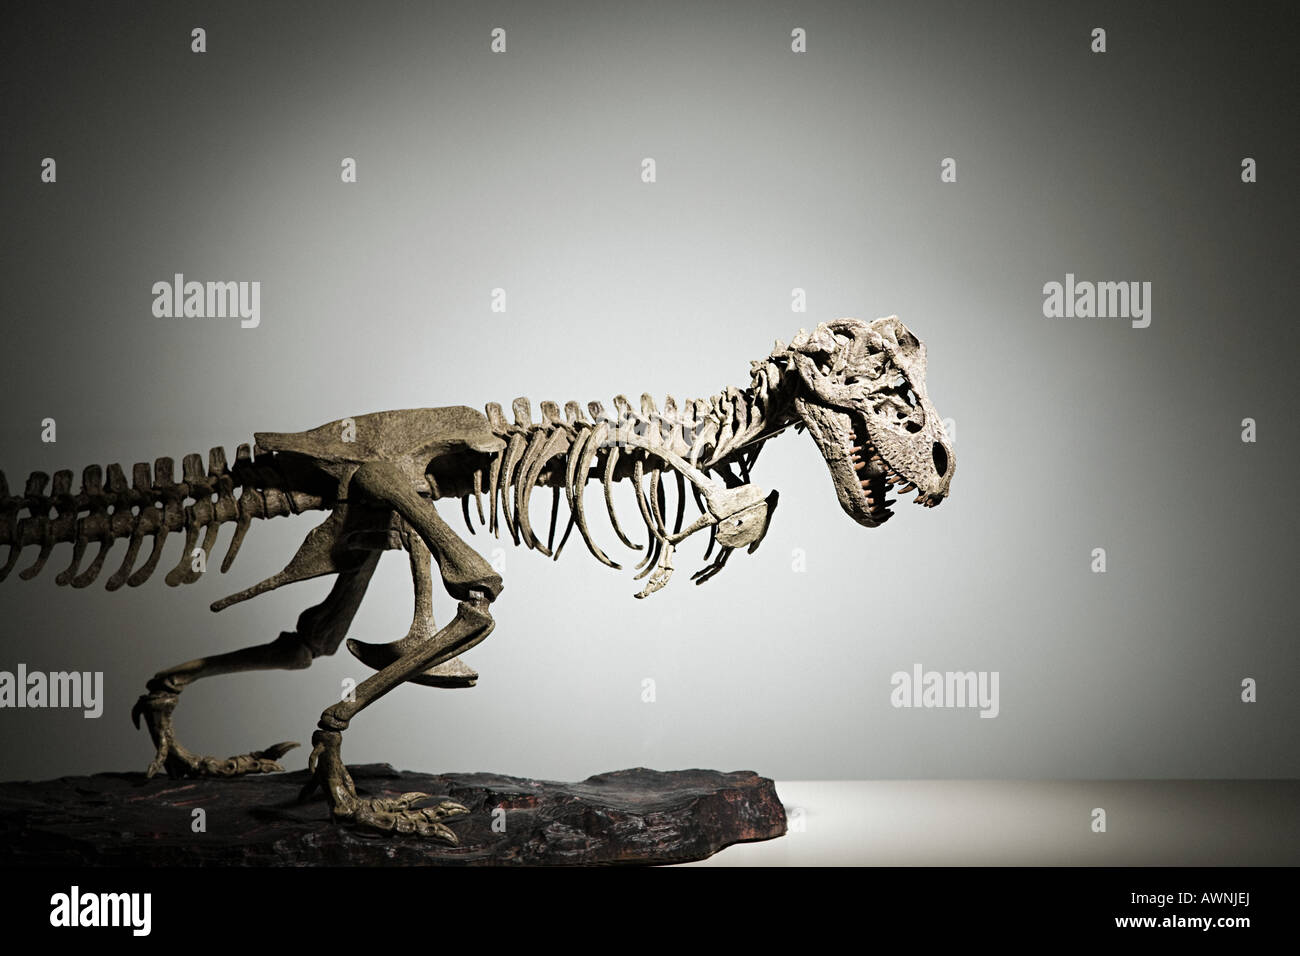 Dinosaur skeleton - Stock Image